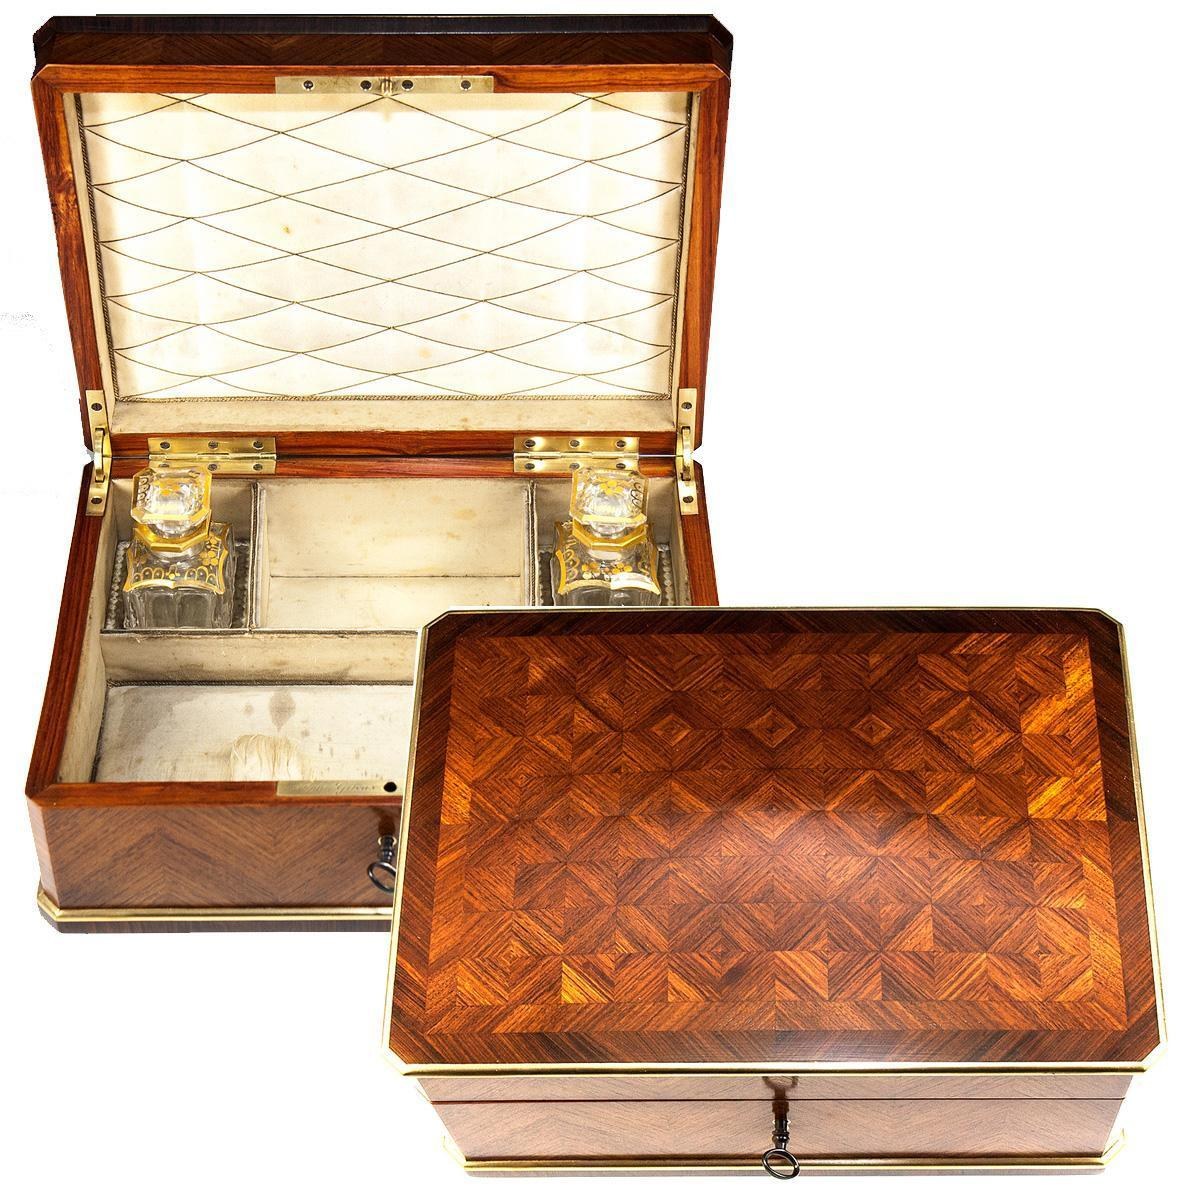 Superb Antique French Jewelry Perfume Sewing Box, Kingwood, by Alph. GIROUX